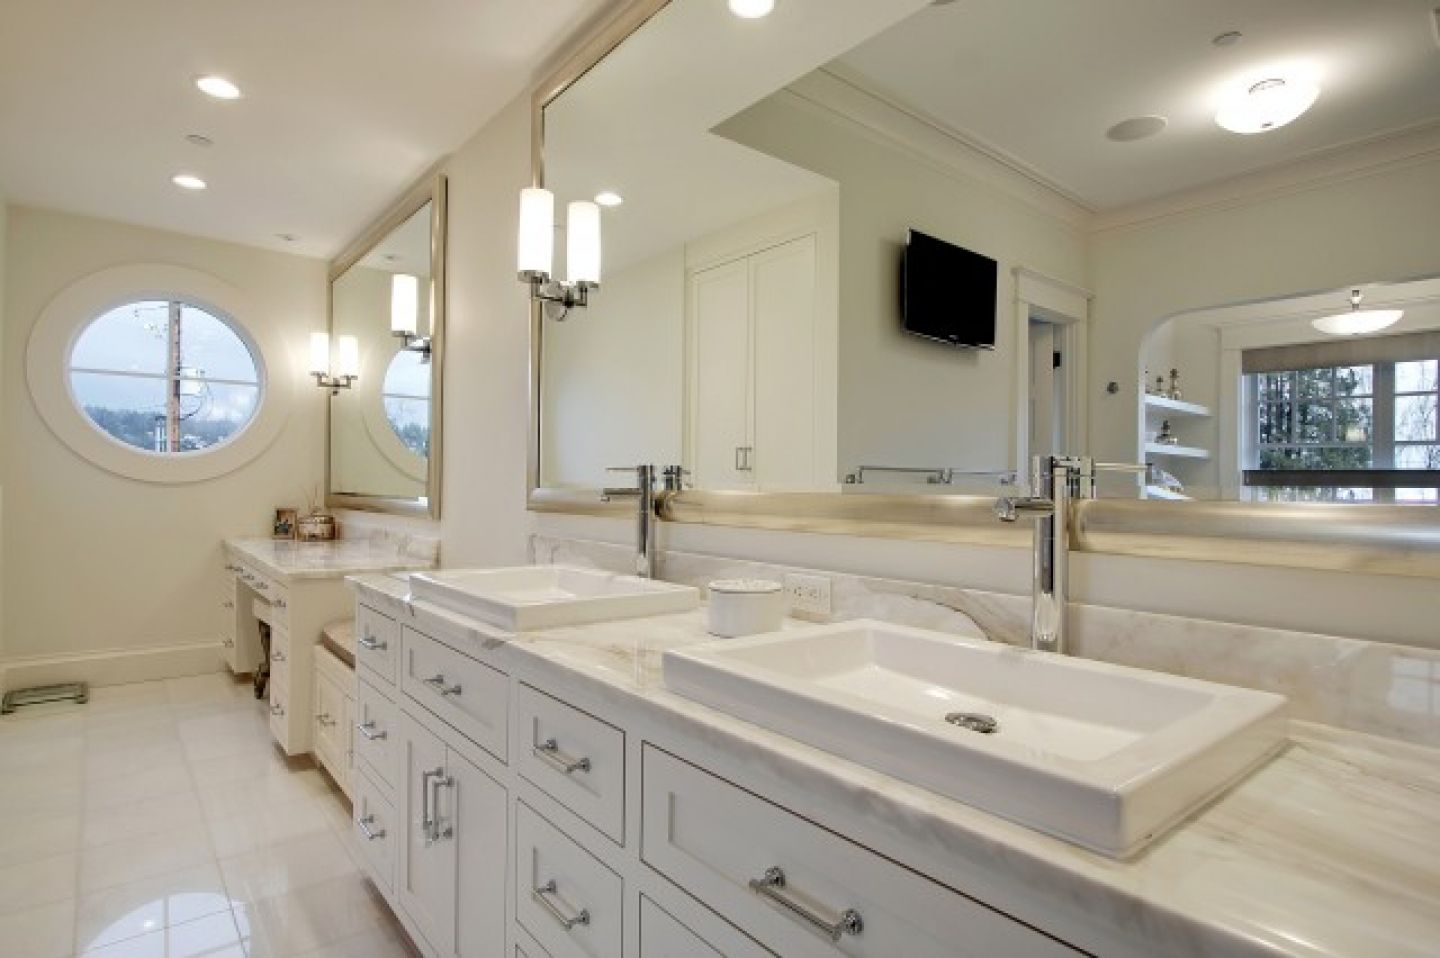 3 simple bathroom mirror ideas midcityeast for Bathrooms in style